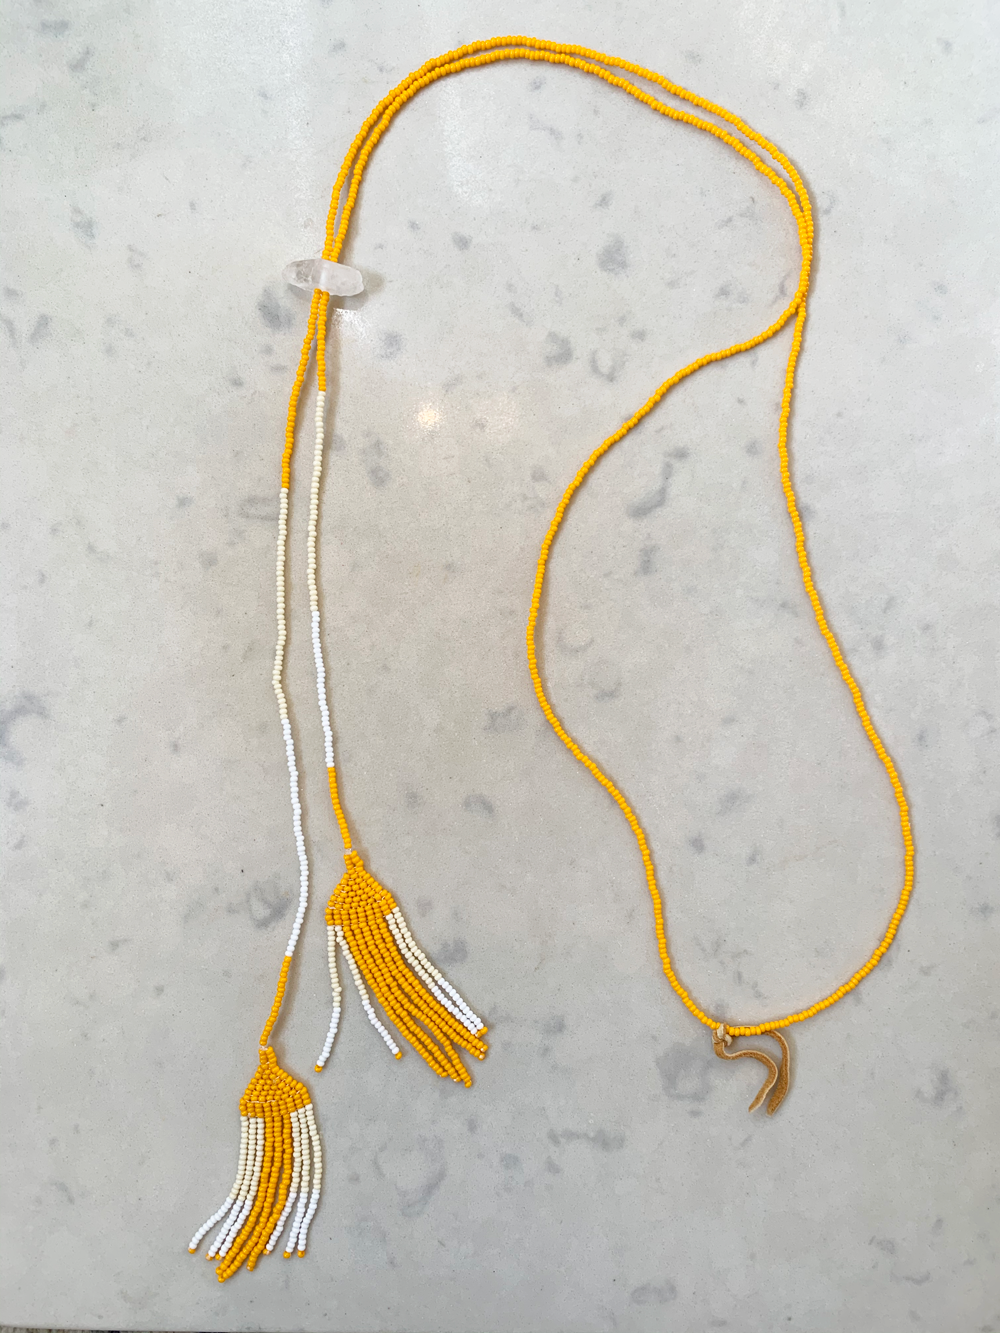 "Hand beaded necklace with yellow/orange and white beads, quartz crystal and vintage leather. Necklace hangs approximately 27"". Pull-on. Styling note: try looping like a lariat!  *Made to order - please allow 1 week + delivery time. Need it faster? Email below and we may be able to accommodate."